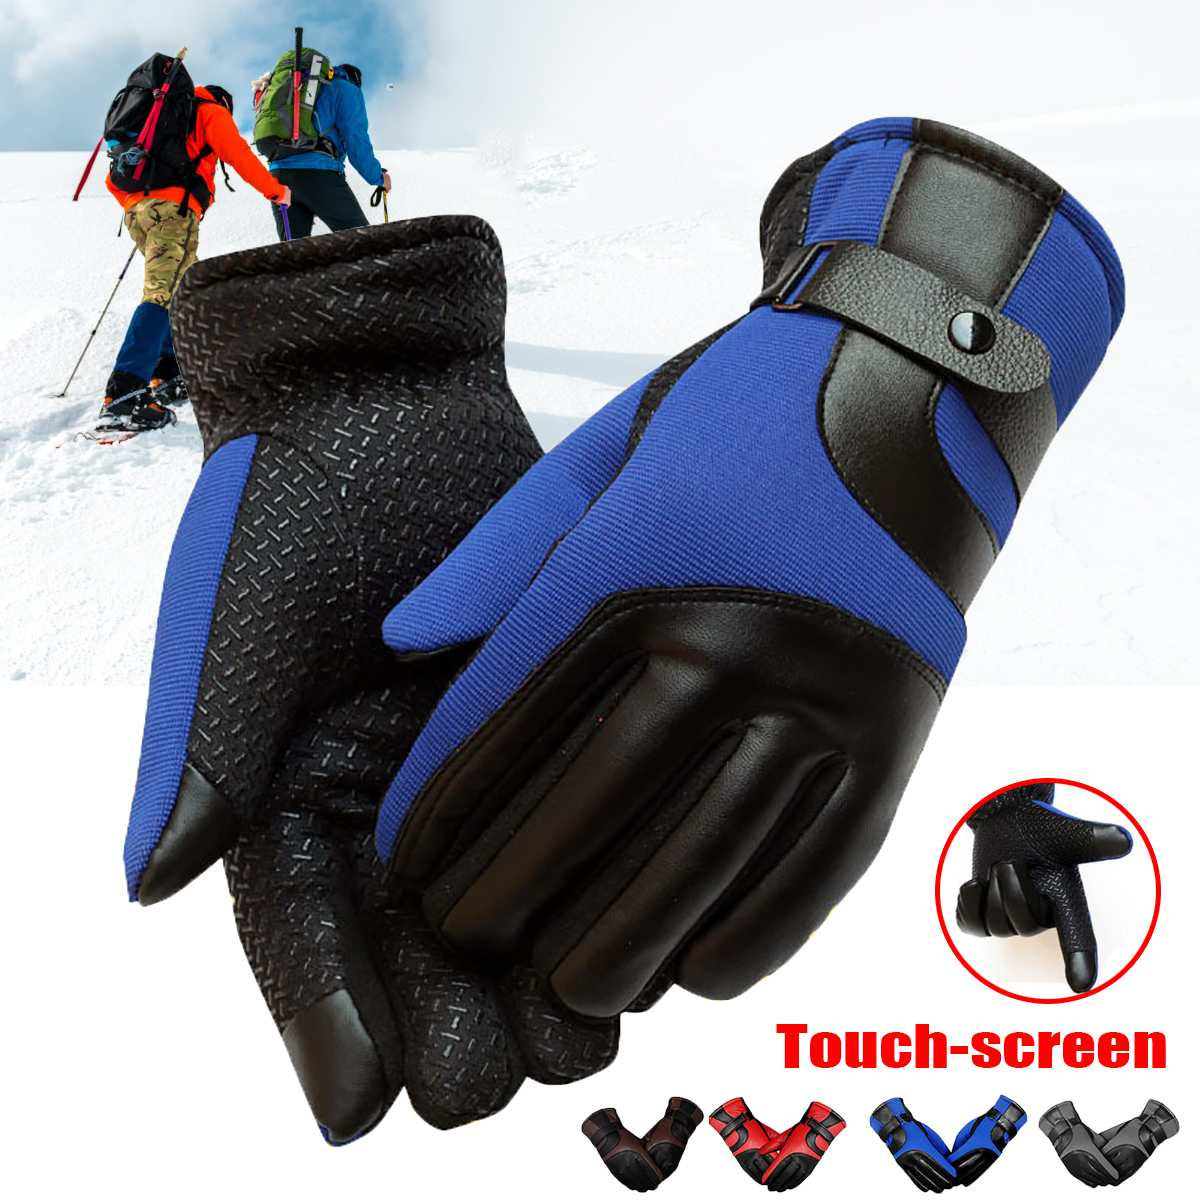 Men Women Ski Gloves Leather Winter Thermal Warmer Touchscreen Glove Camouflage Windproof Waterproof Cycling Motorcycle Gloves